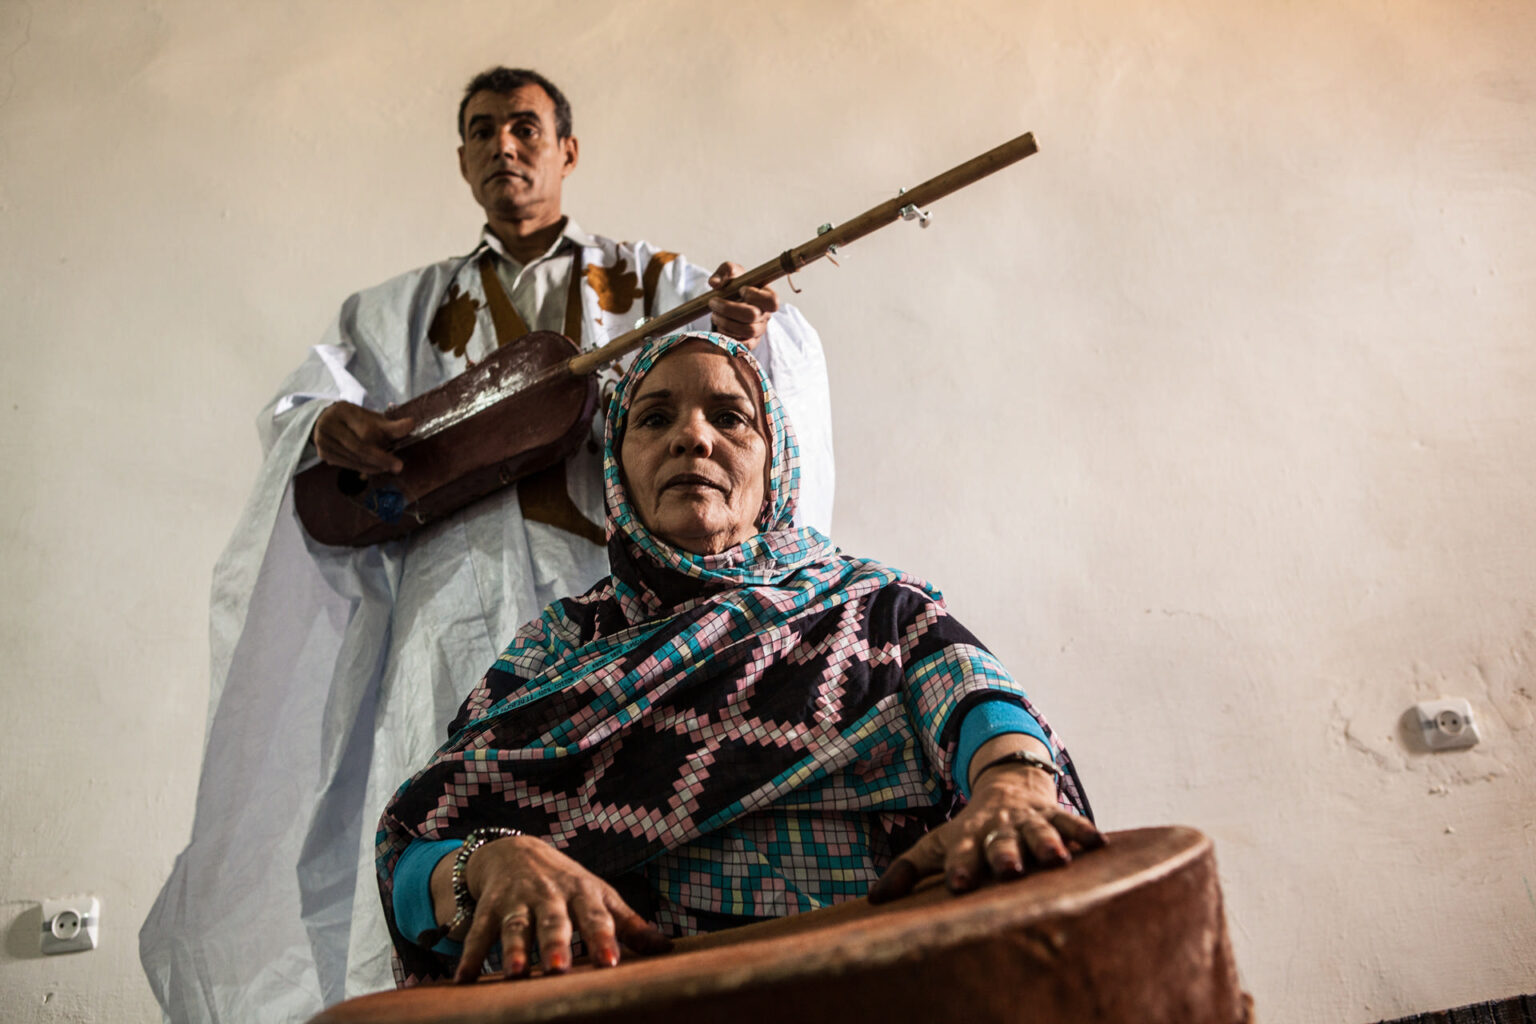 Al-Walid band of musicians, Laayoune Refugee Camp, Algeria, 2015